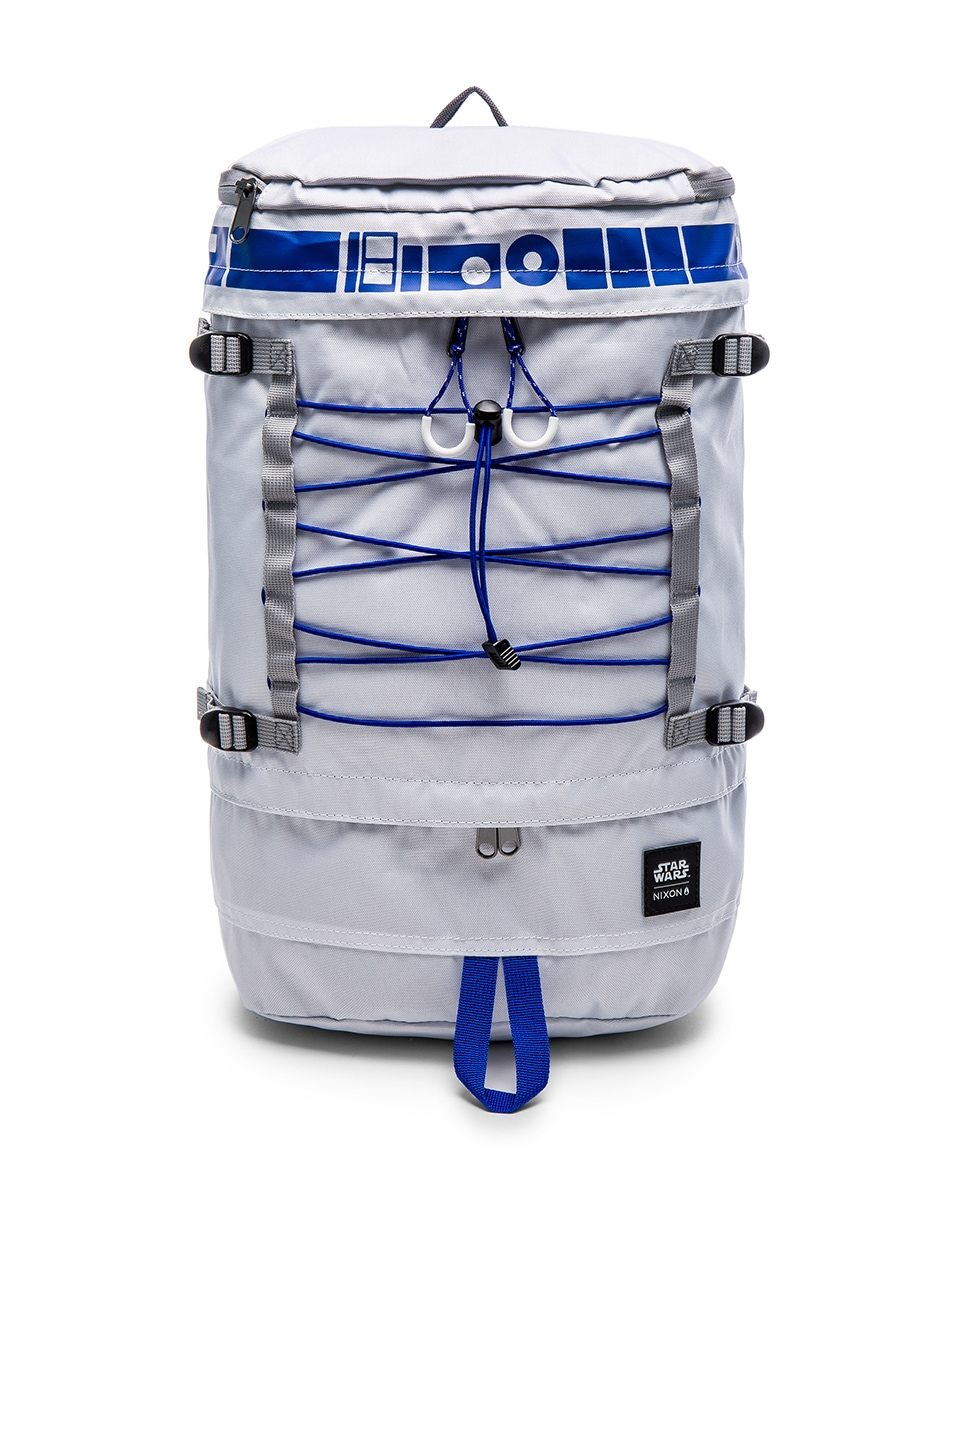 Nixon x Star Wars R2D2 Drum in R2D2 White